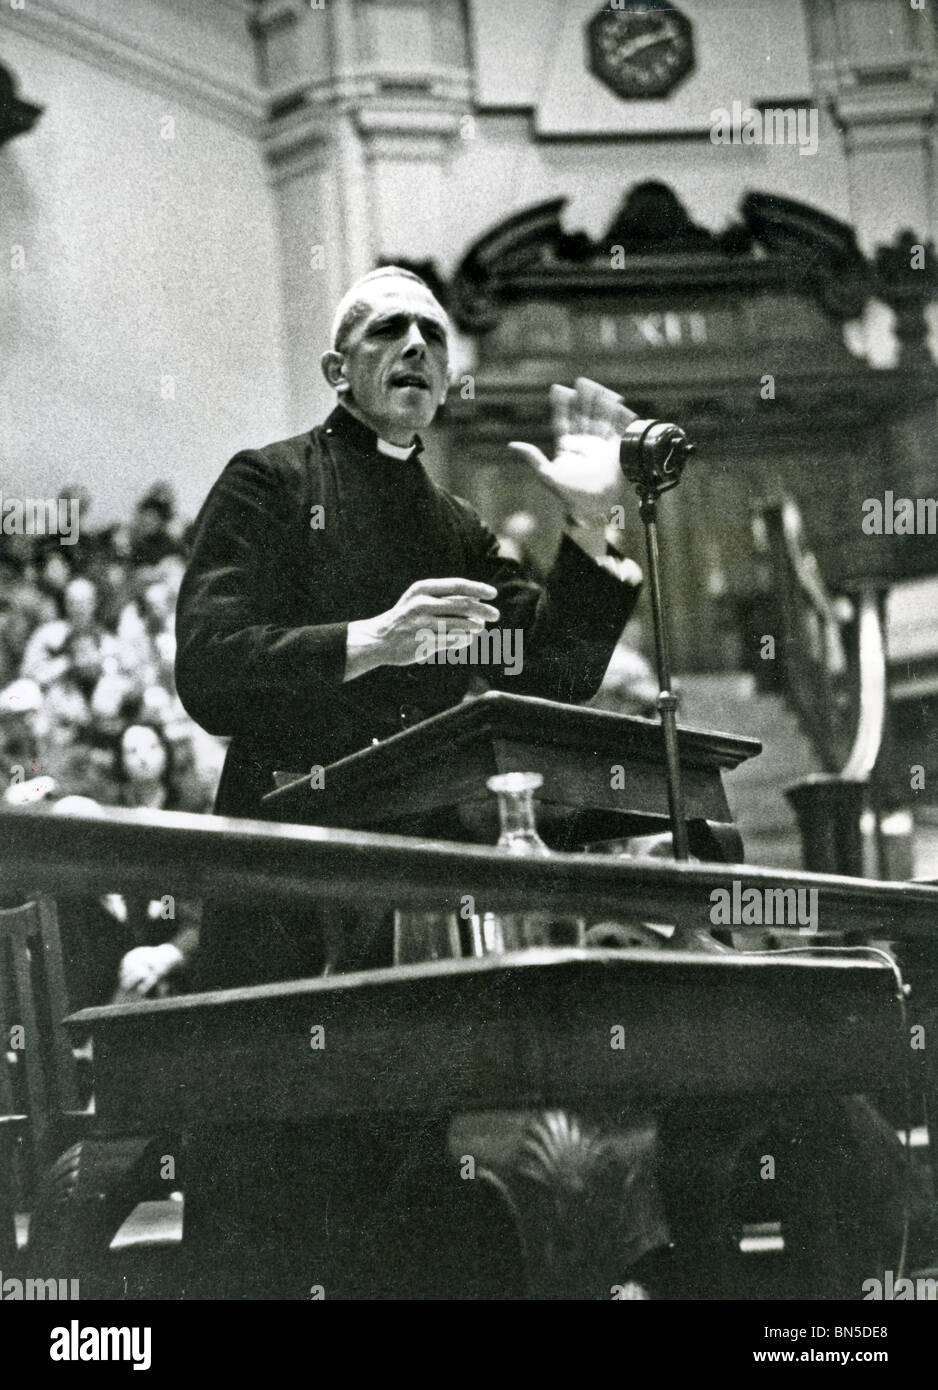 TREVOR HUDDLESTON (1913-98) Anglican priest making an anti-apartheid speech at Central Hall, Westminster about 1958 - Stock Image